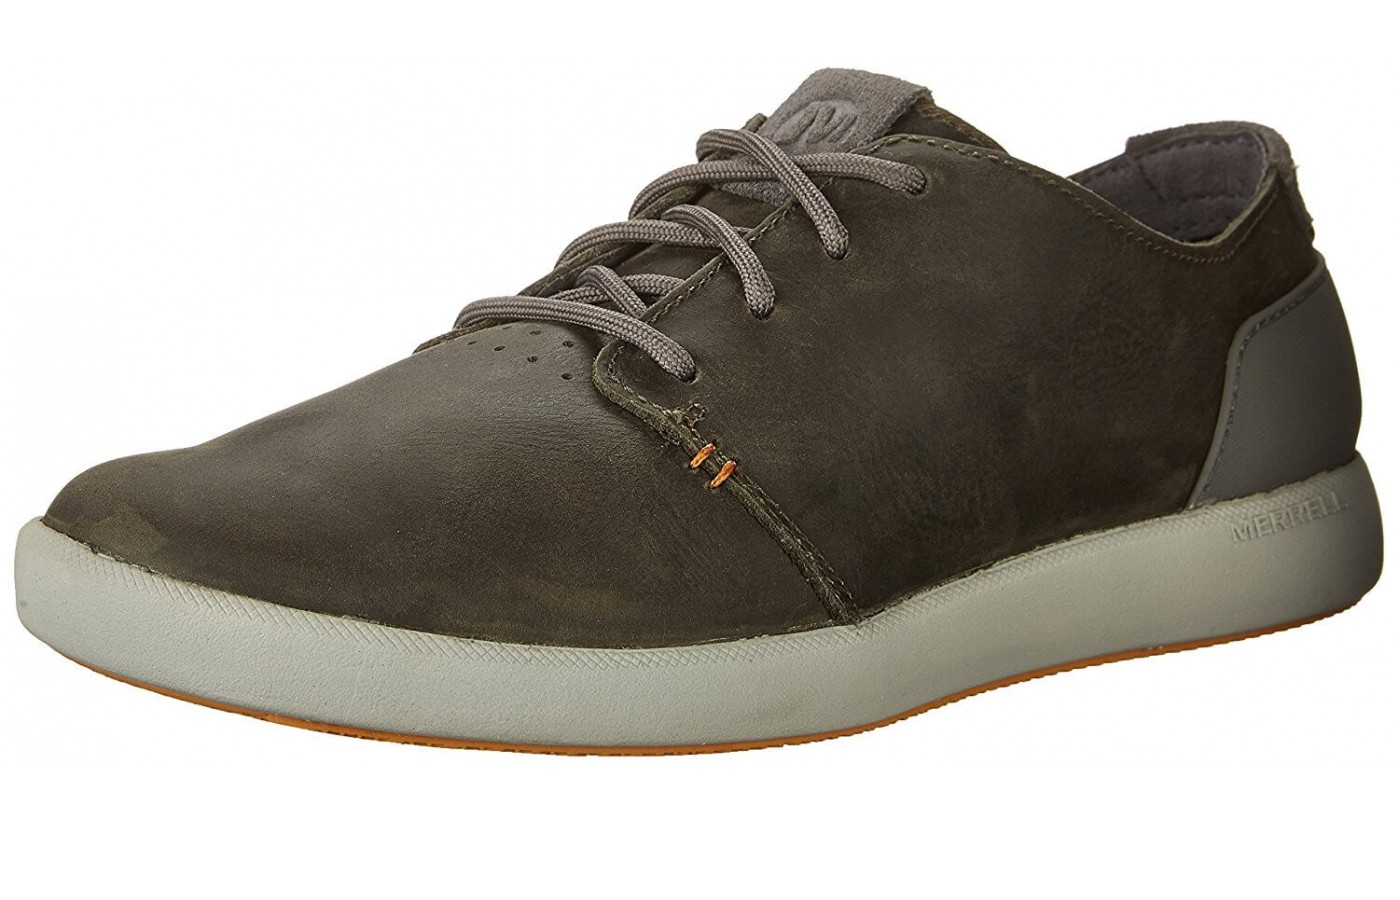 The Merrell Freewheel Lace features a suede upper